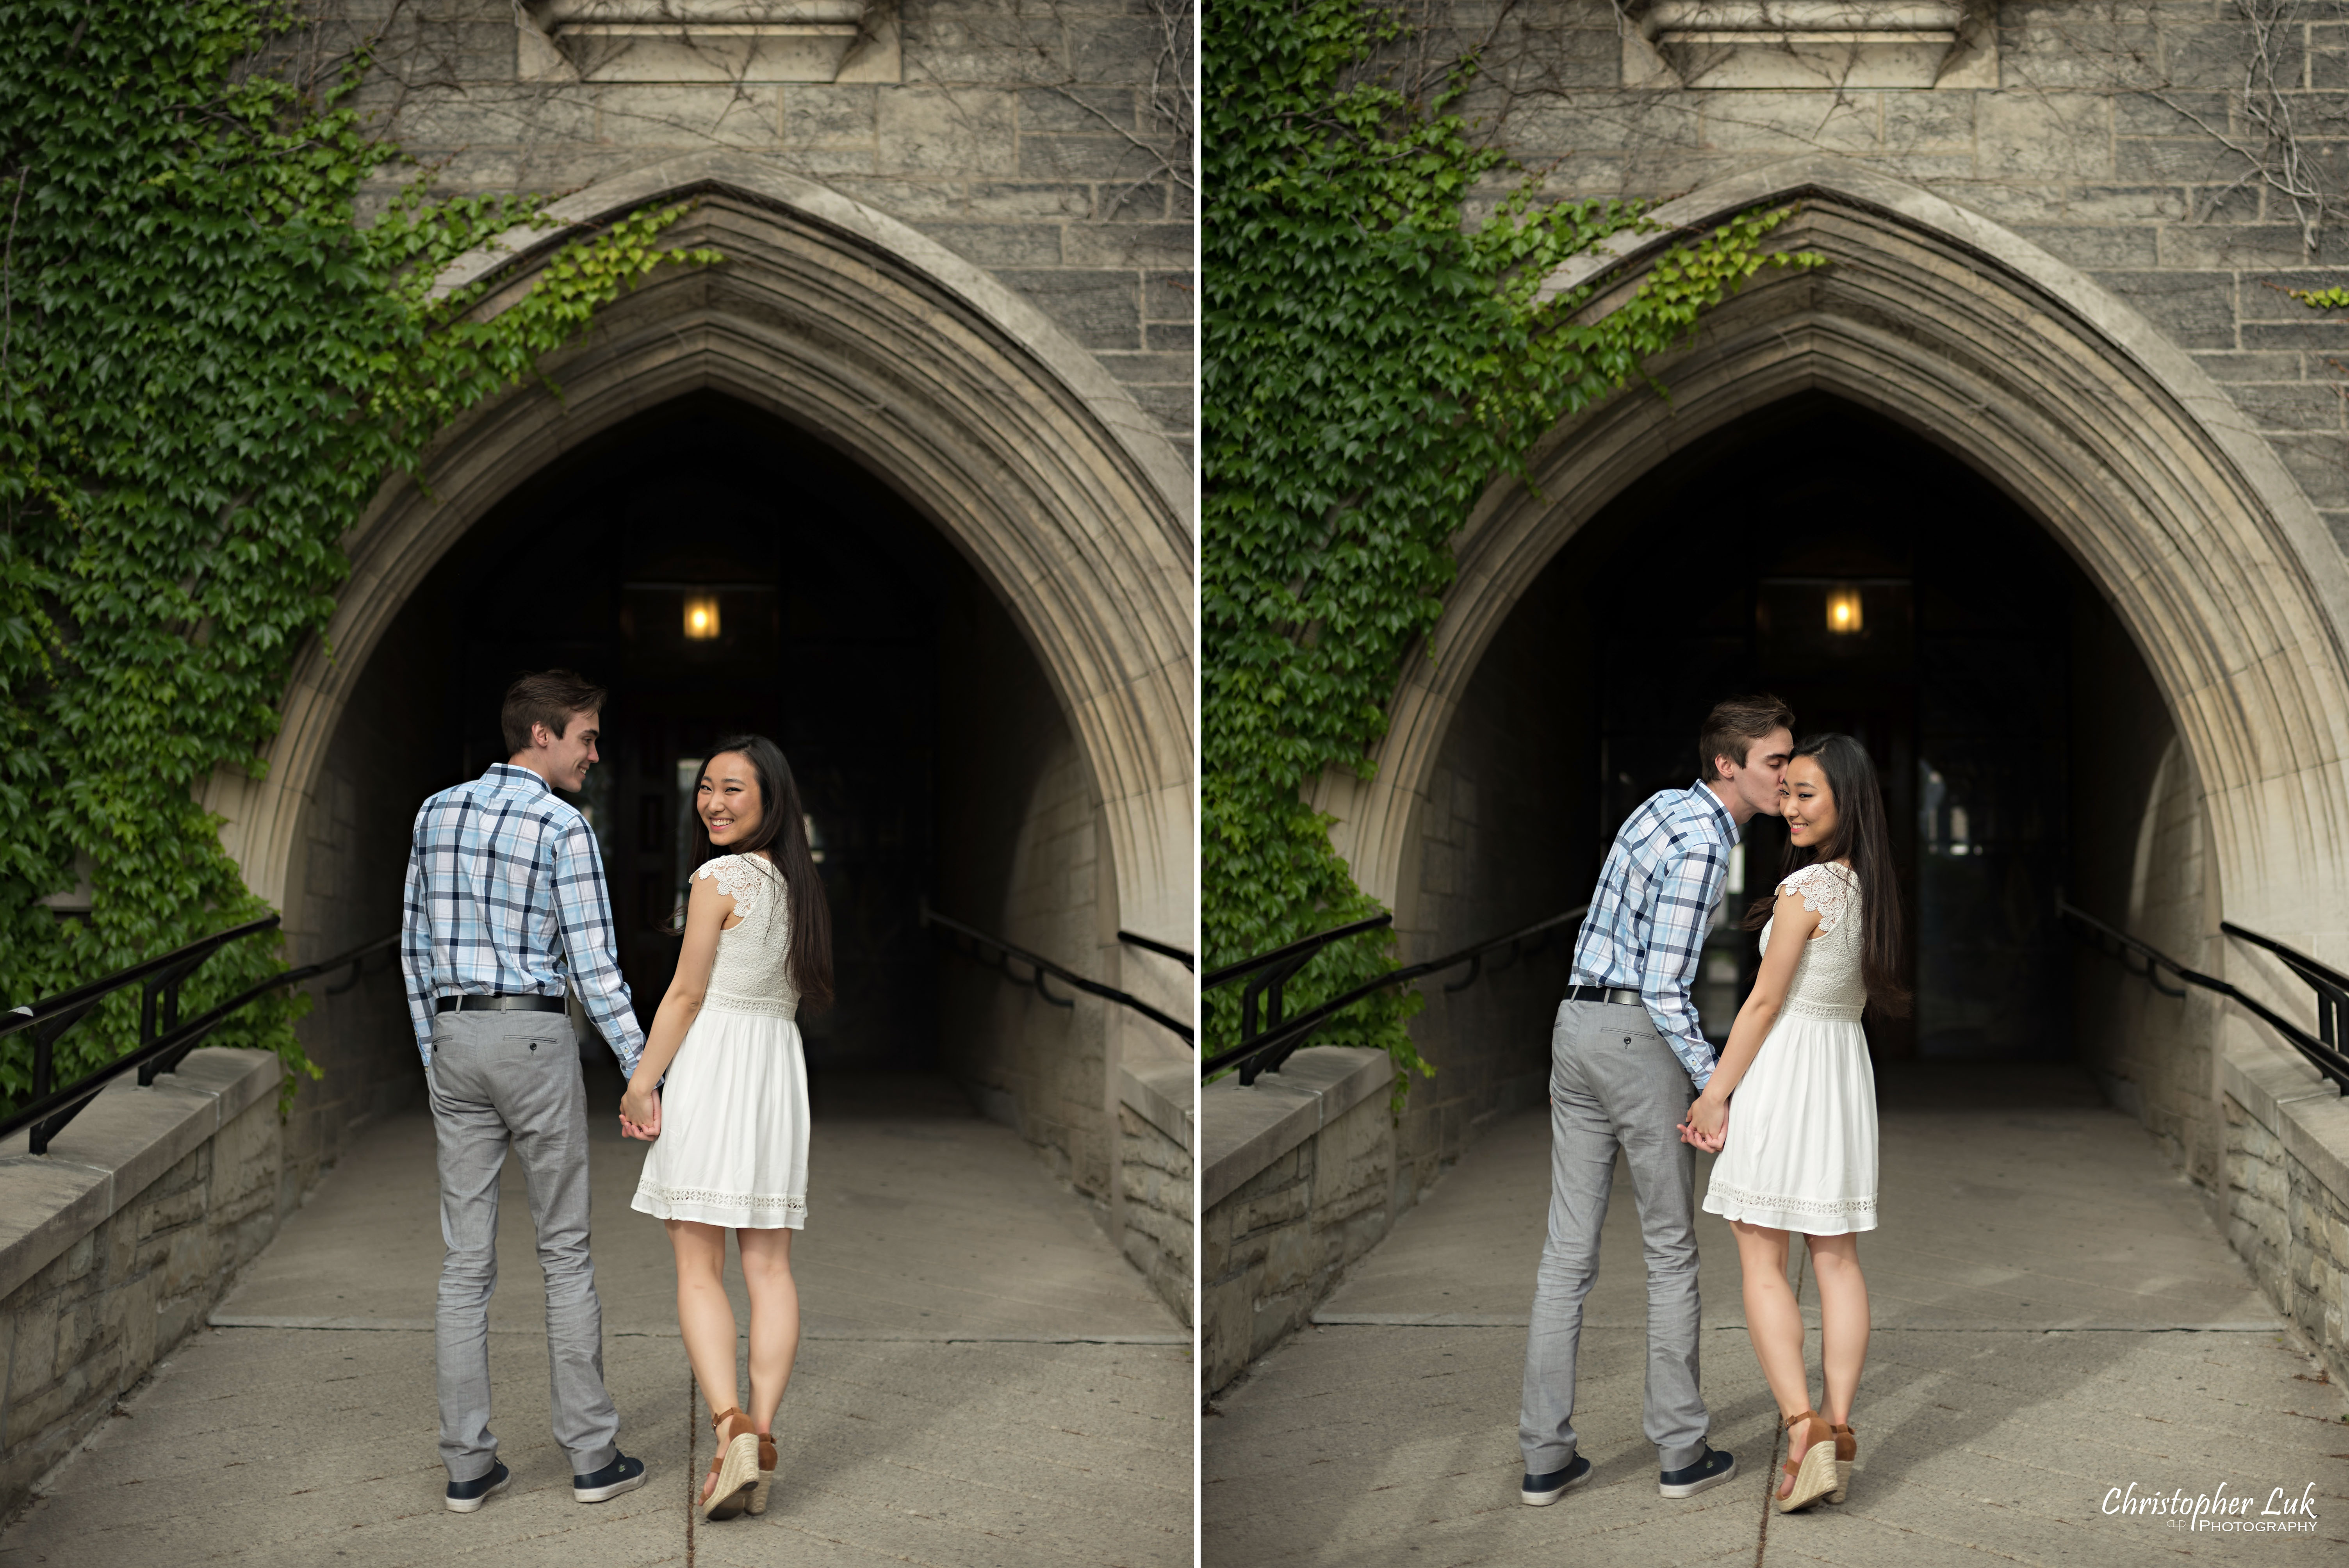 Cindy and Matthew's University of Toronto Downtown (University College, King's College Circle, Hart House) Engagement Session